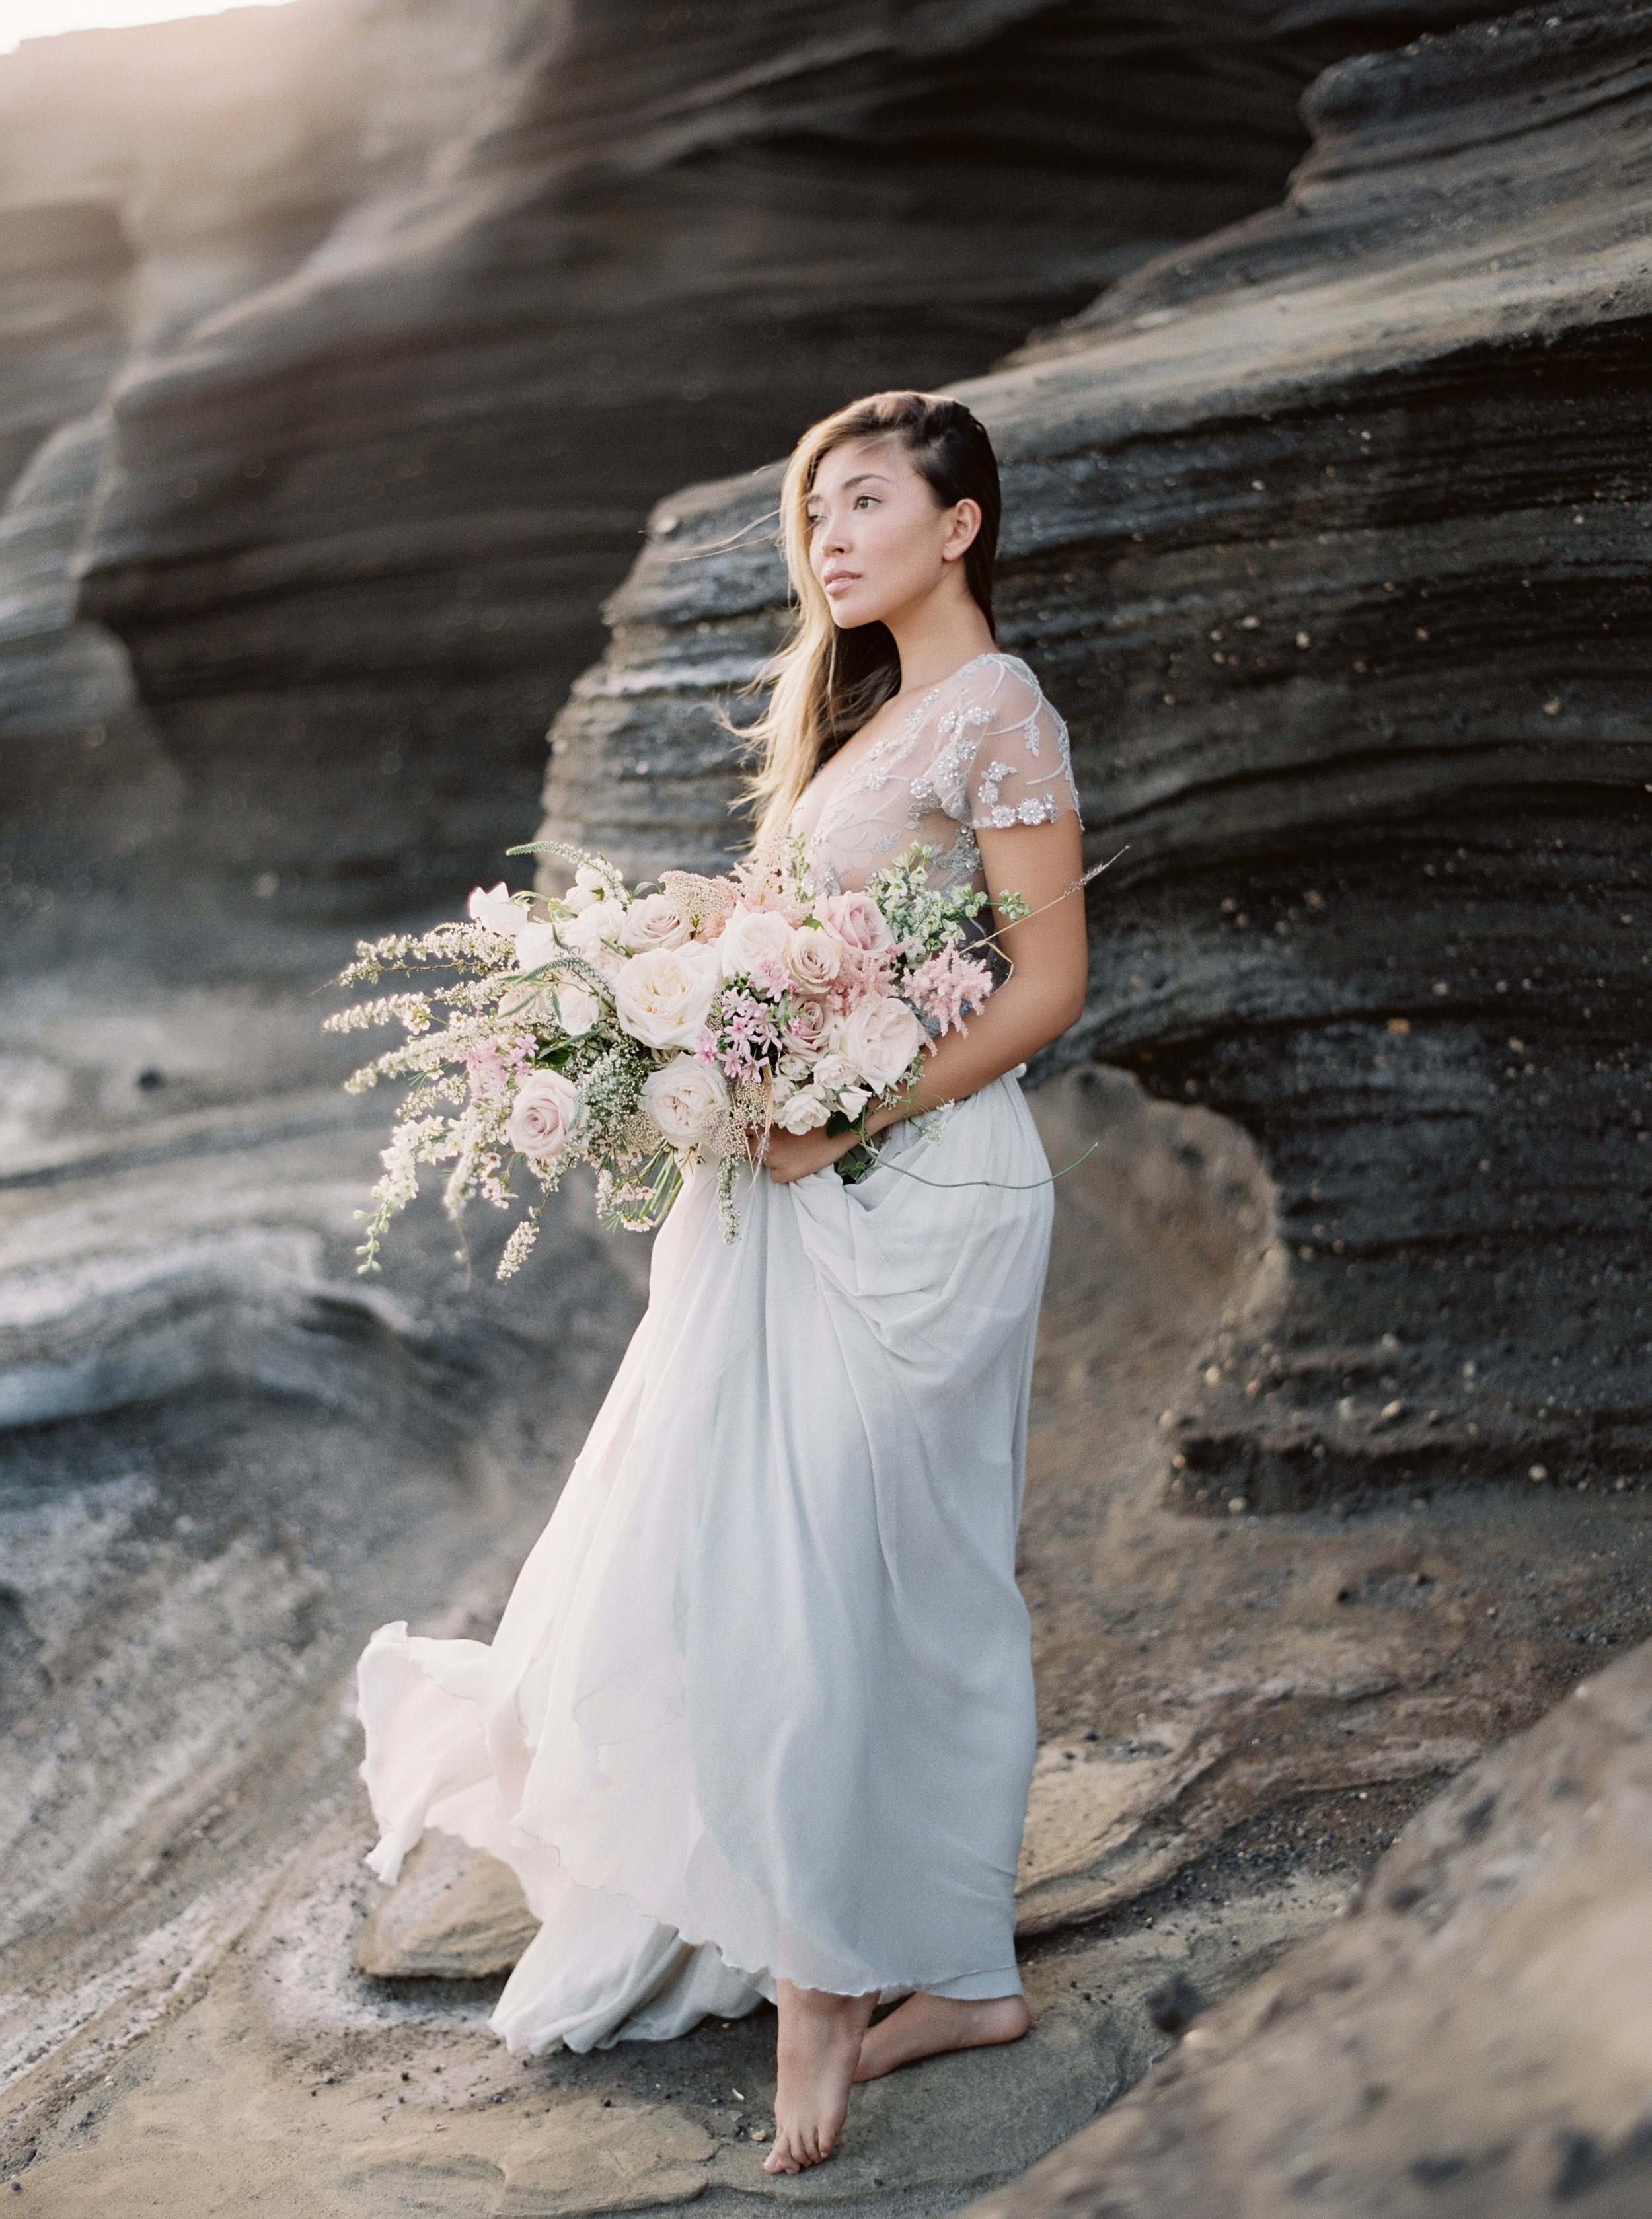 HawaiiStyledShootFILM (17 of 72).jpg